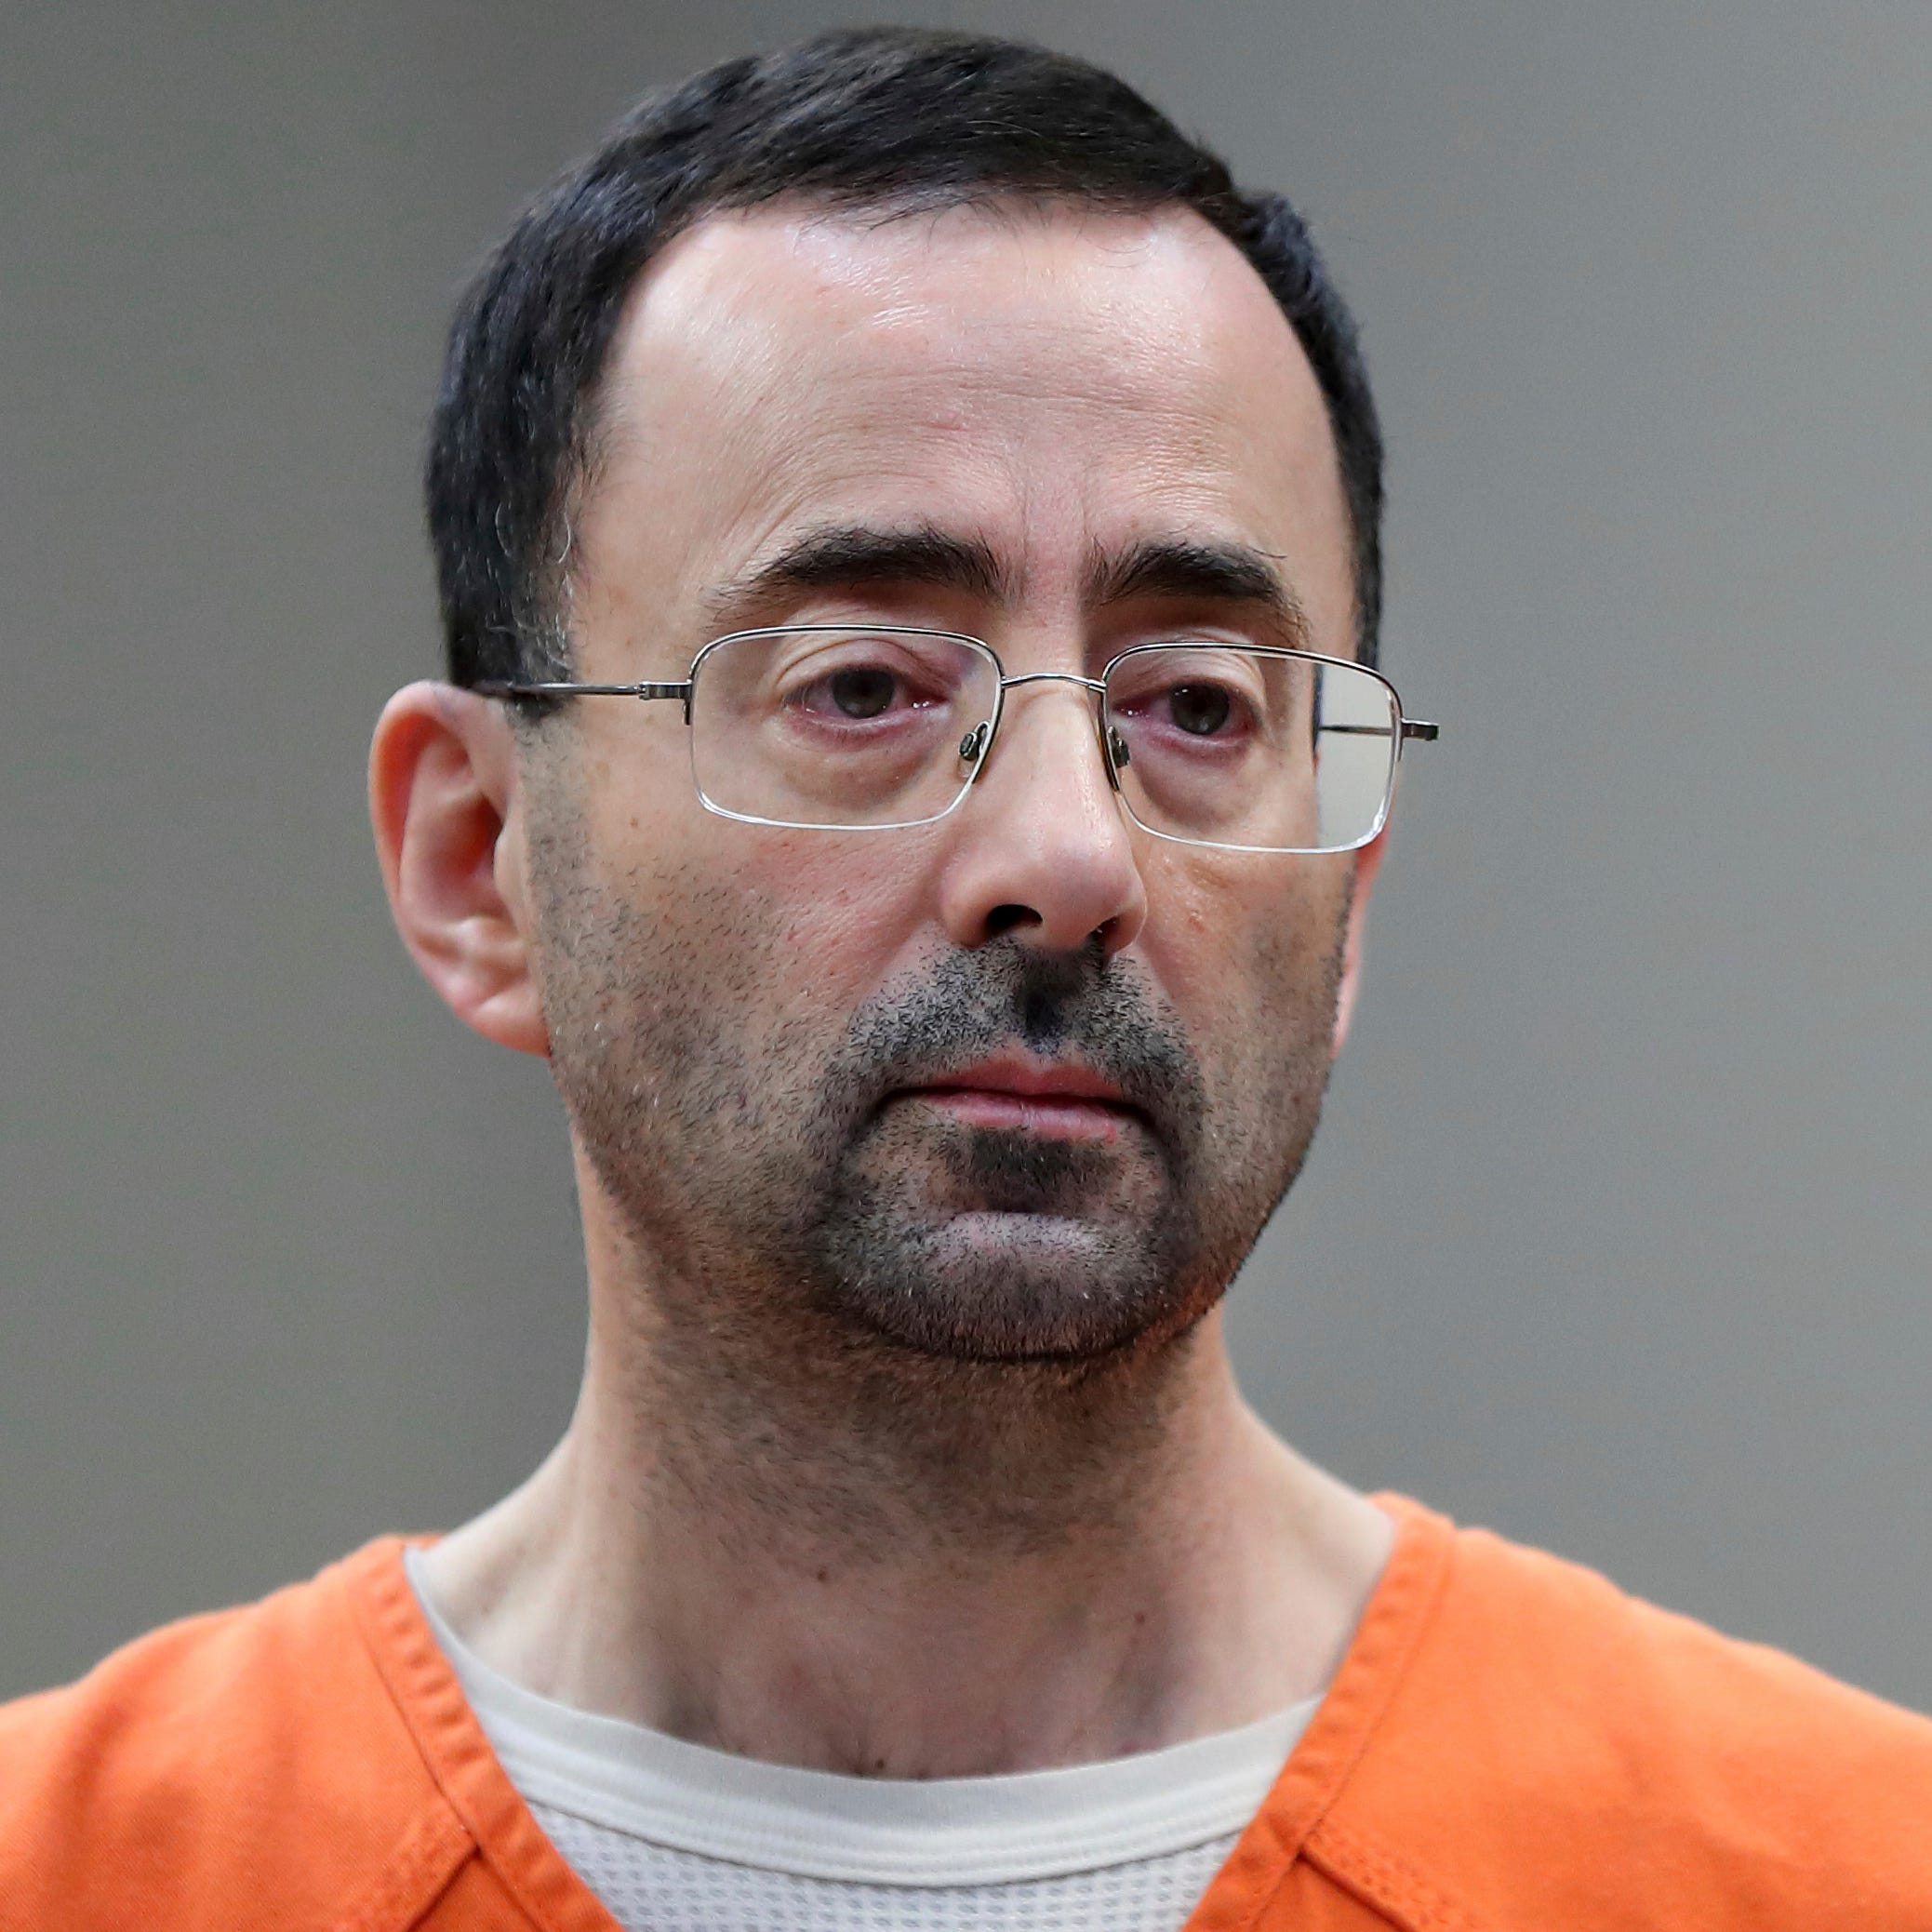 Nassar transferred to a holdover prison after assault